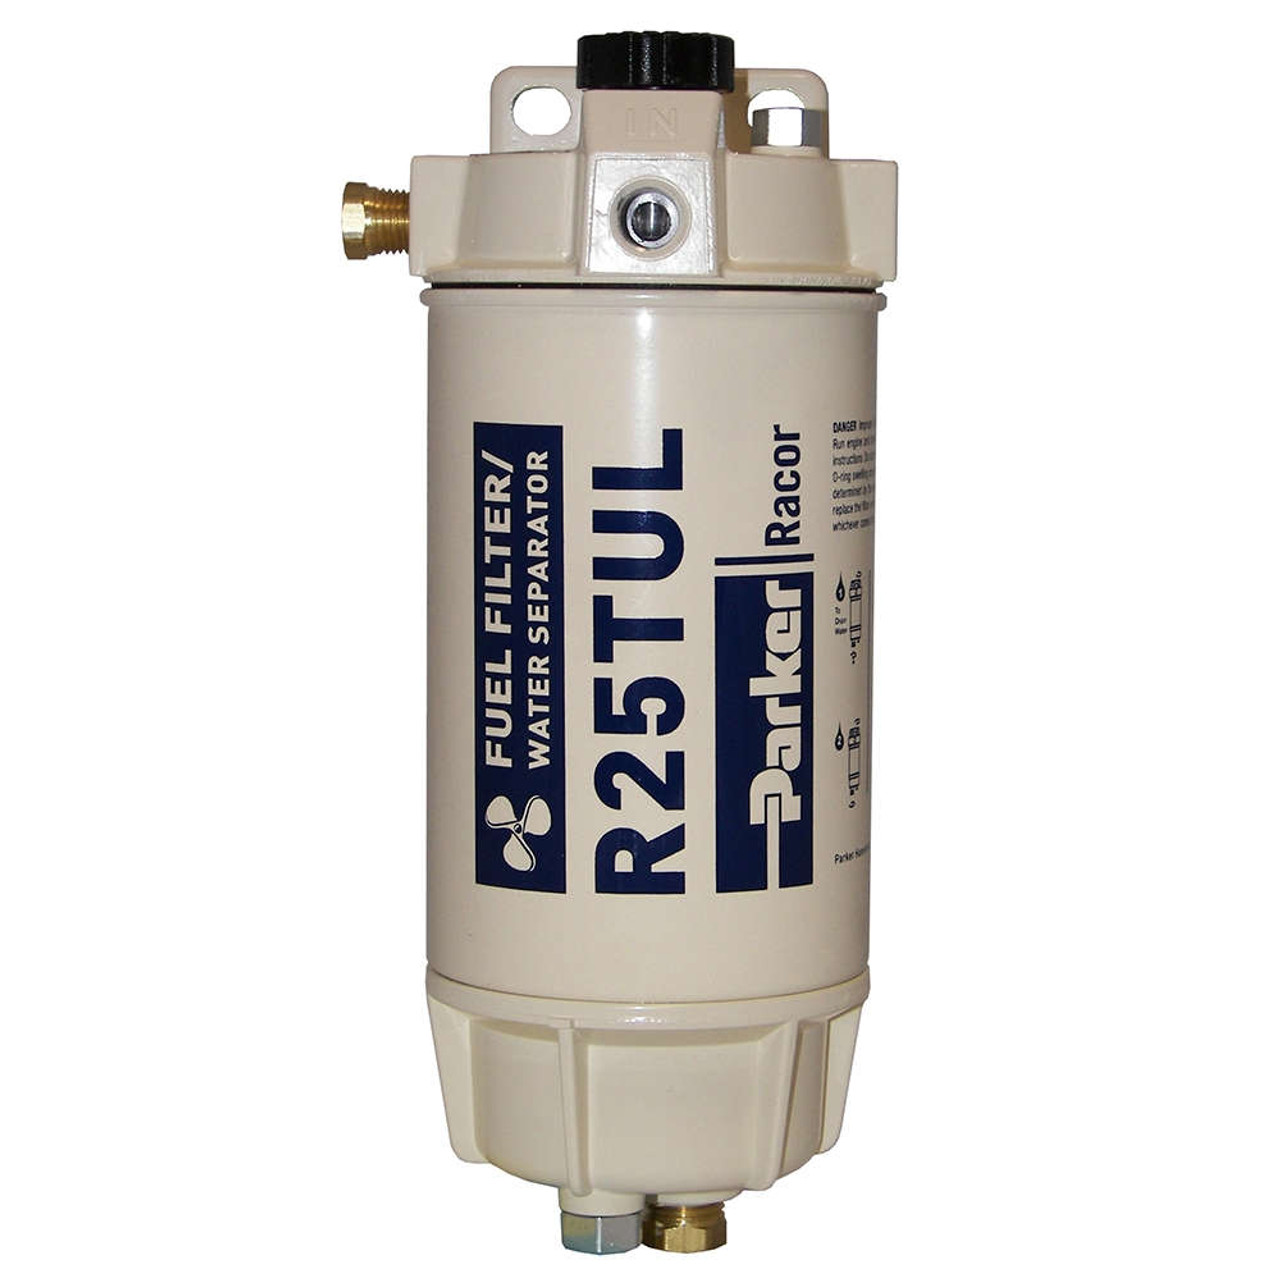 racor 1 4 in 45 gph aquabloc marine spin on type diesel fuel filter water separator assembly 6 qty john m ellsworth co inc  [ 1000 x 1000 Pixel ]